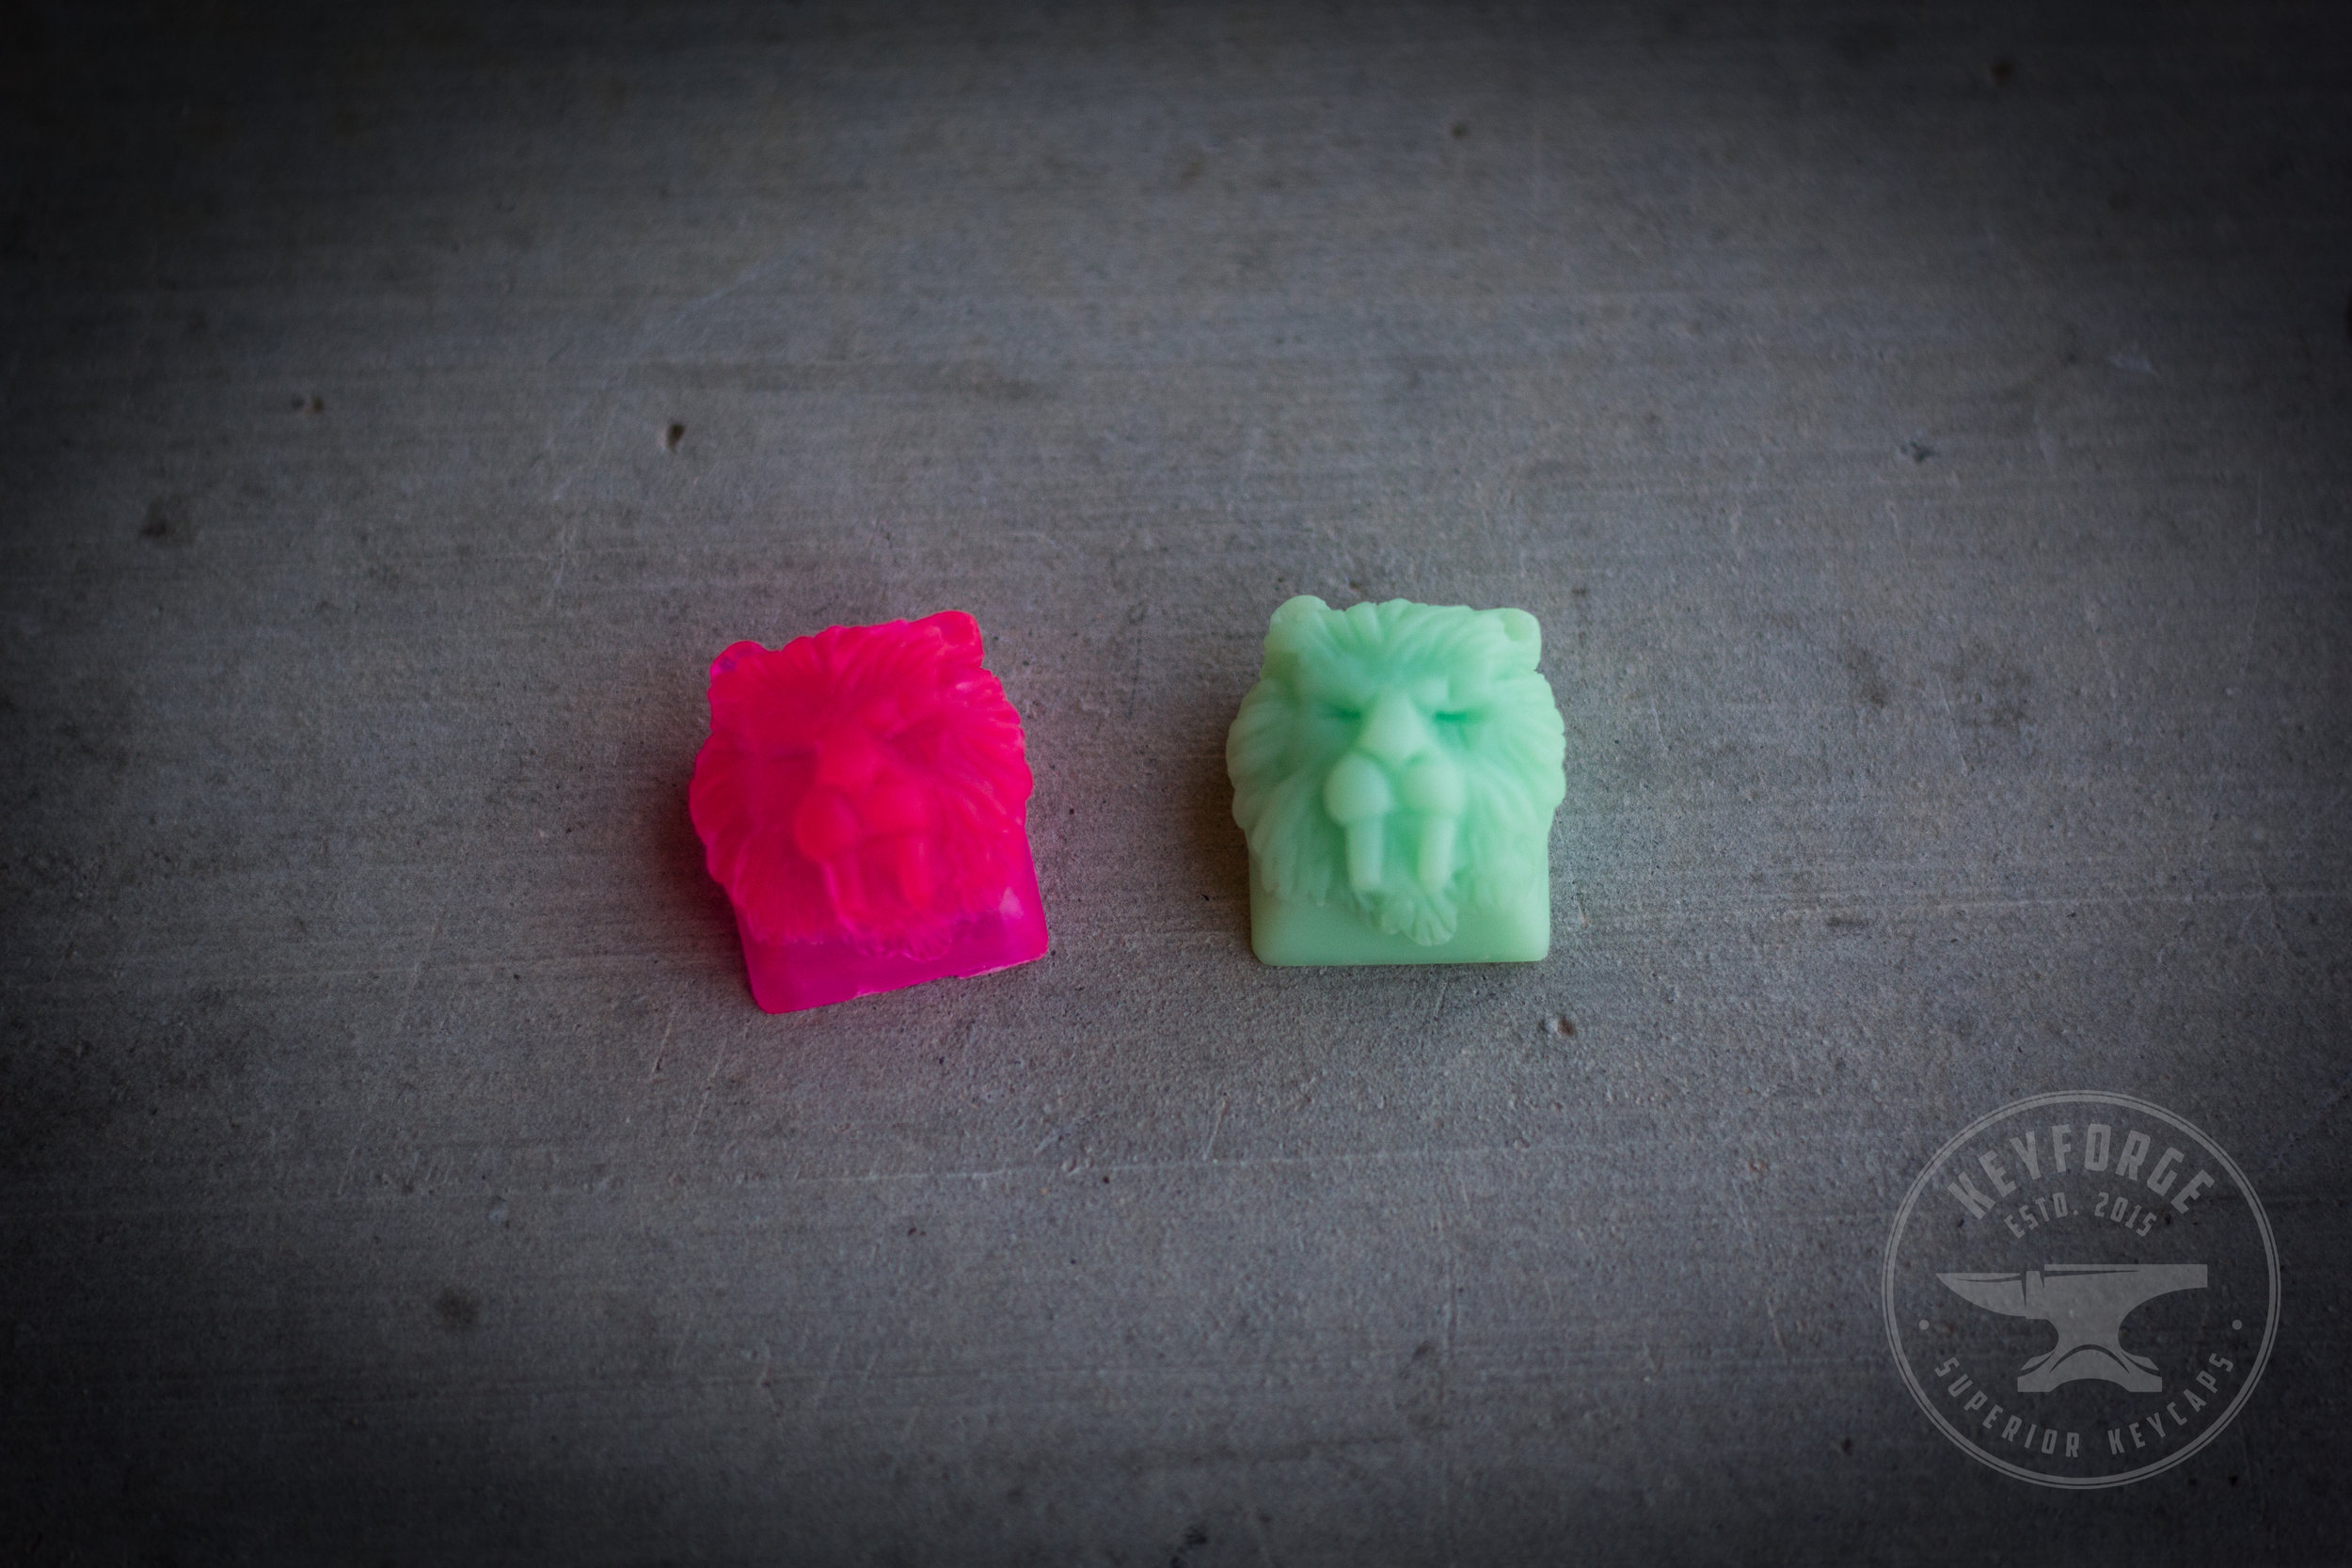 Saber -  Fuchsian  (Left)  Saber -  Cucumber Freeze  (Right)   MYSTERY KEYS  $0